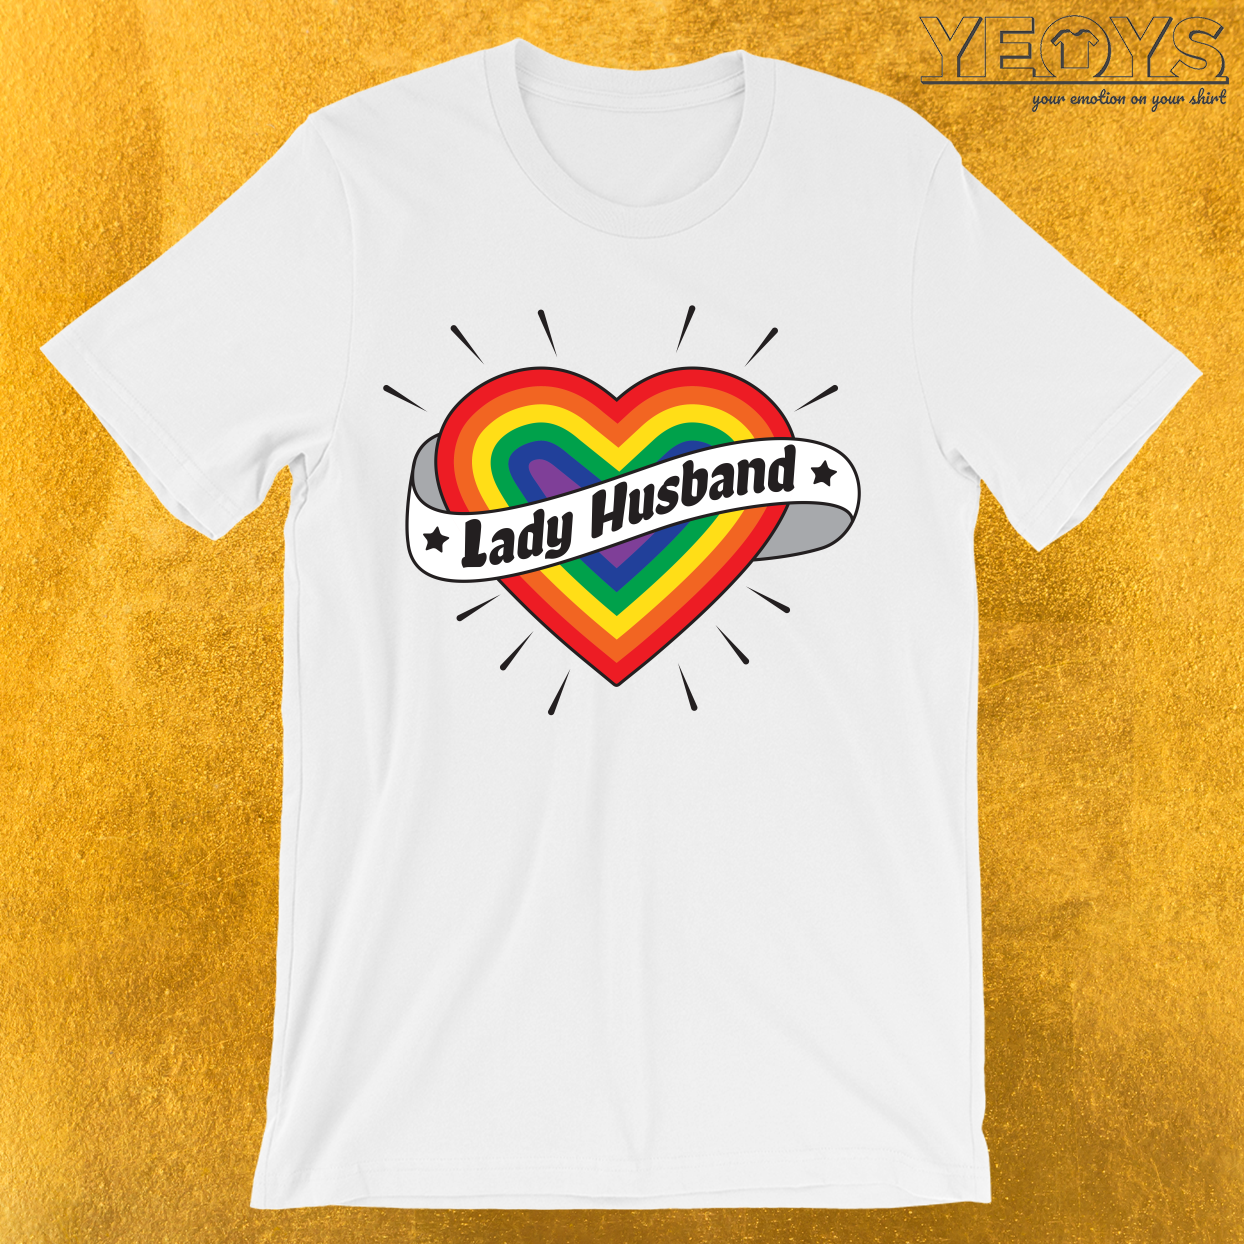 Lady Husband T-Shirt